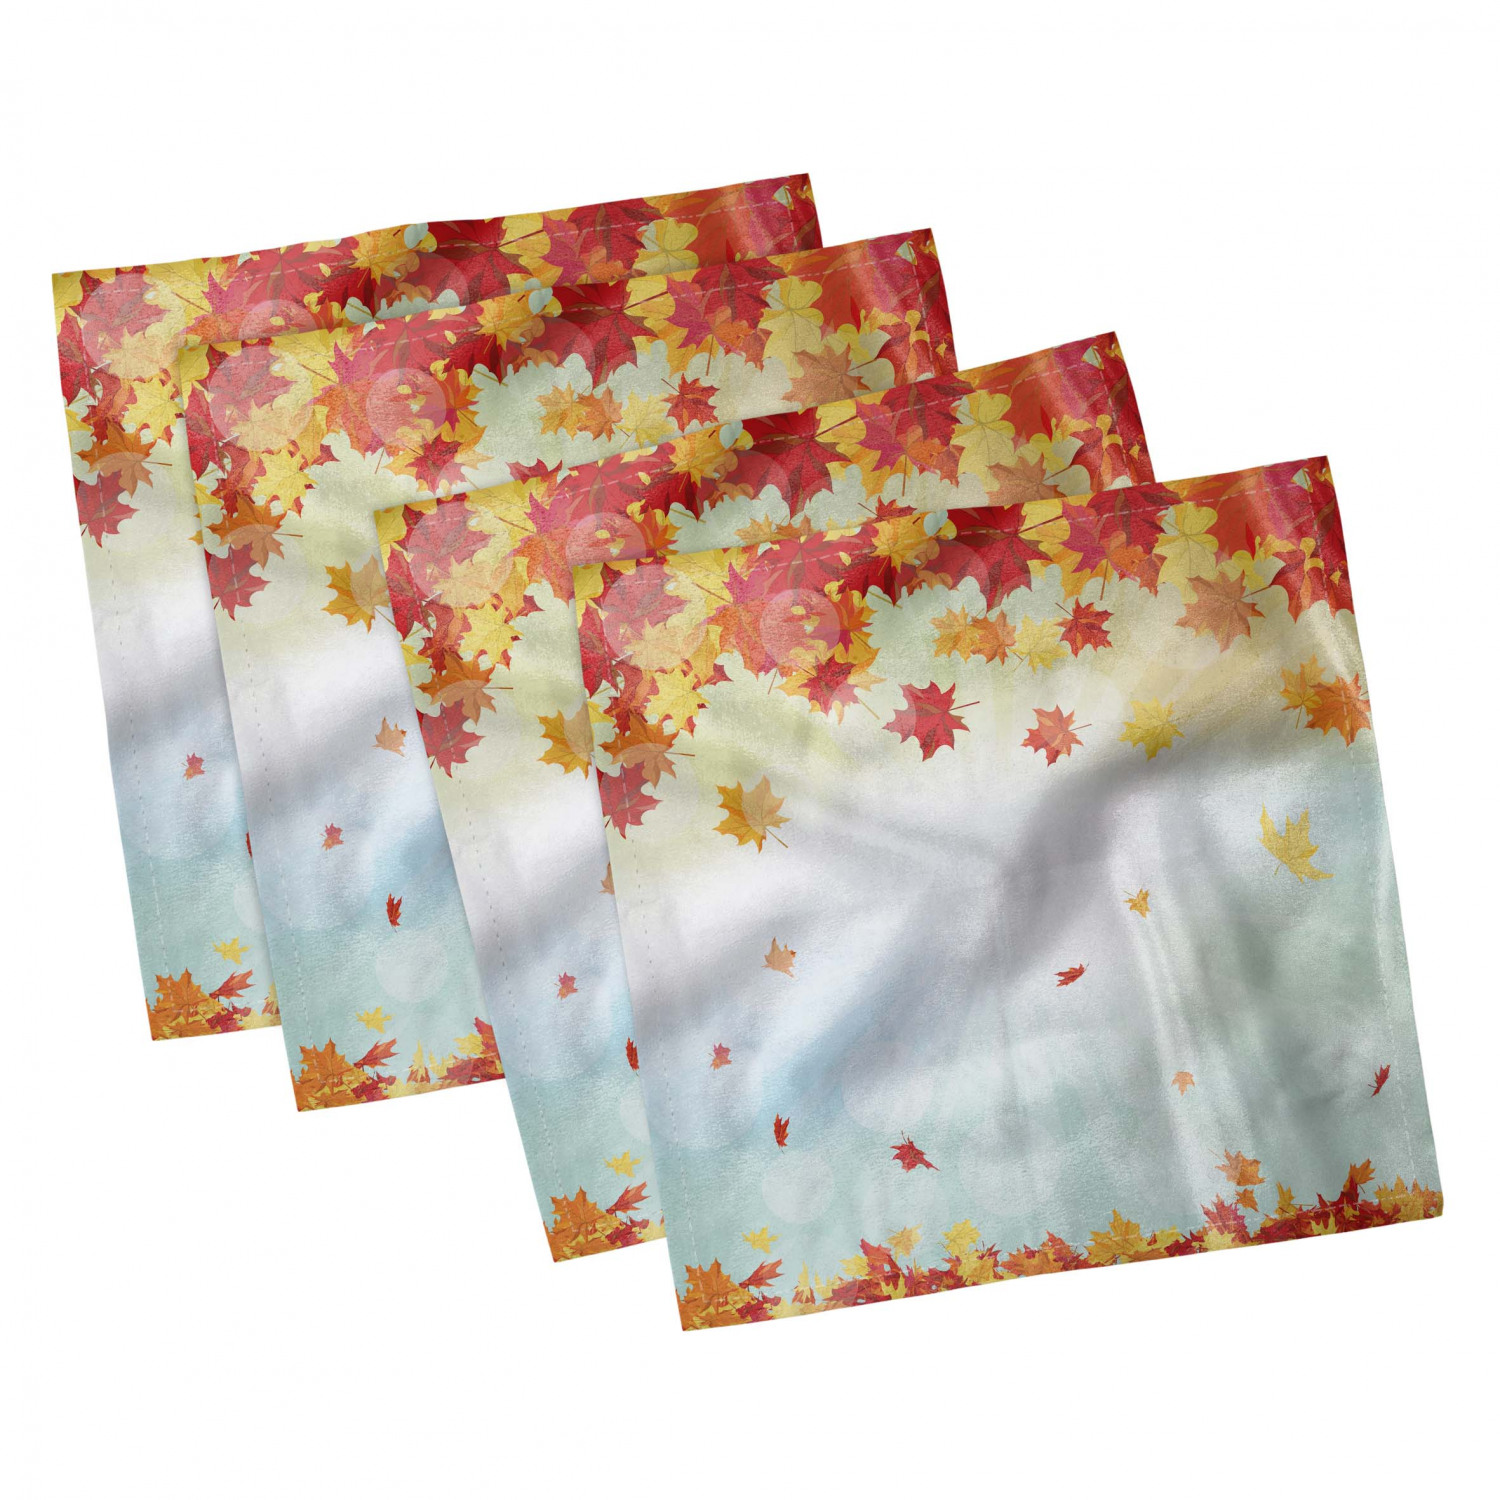 thumbnail 47 - Ambesonne Autumn Fall Decorative Satin Napkins Set of 4 Party Dinner Fabric